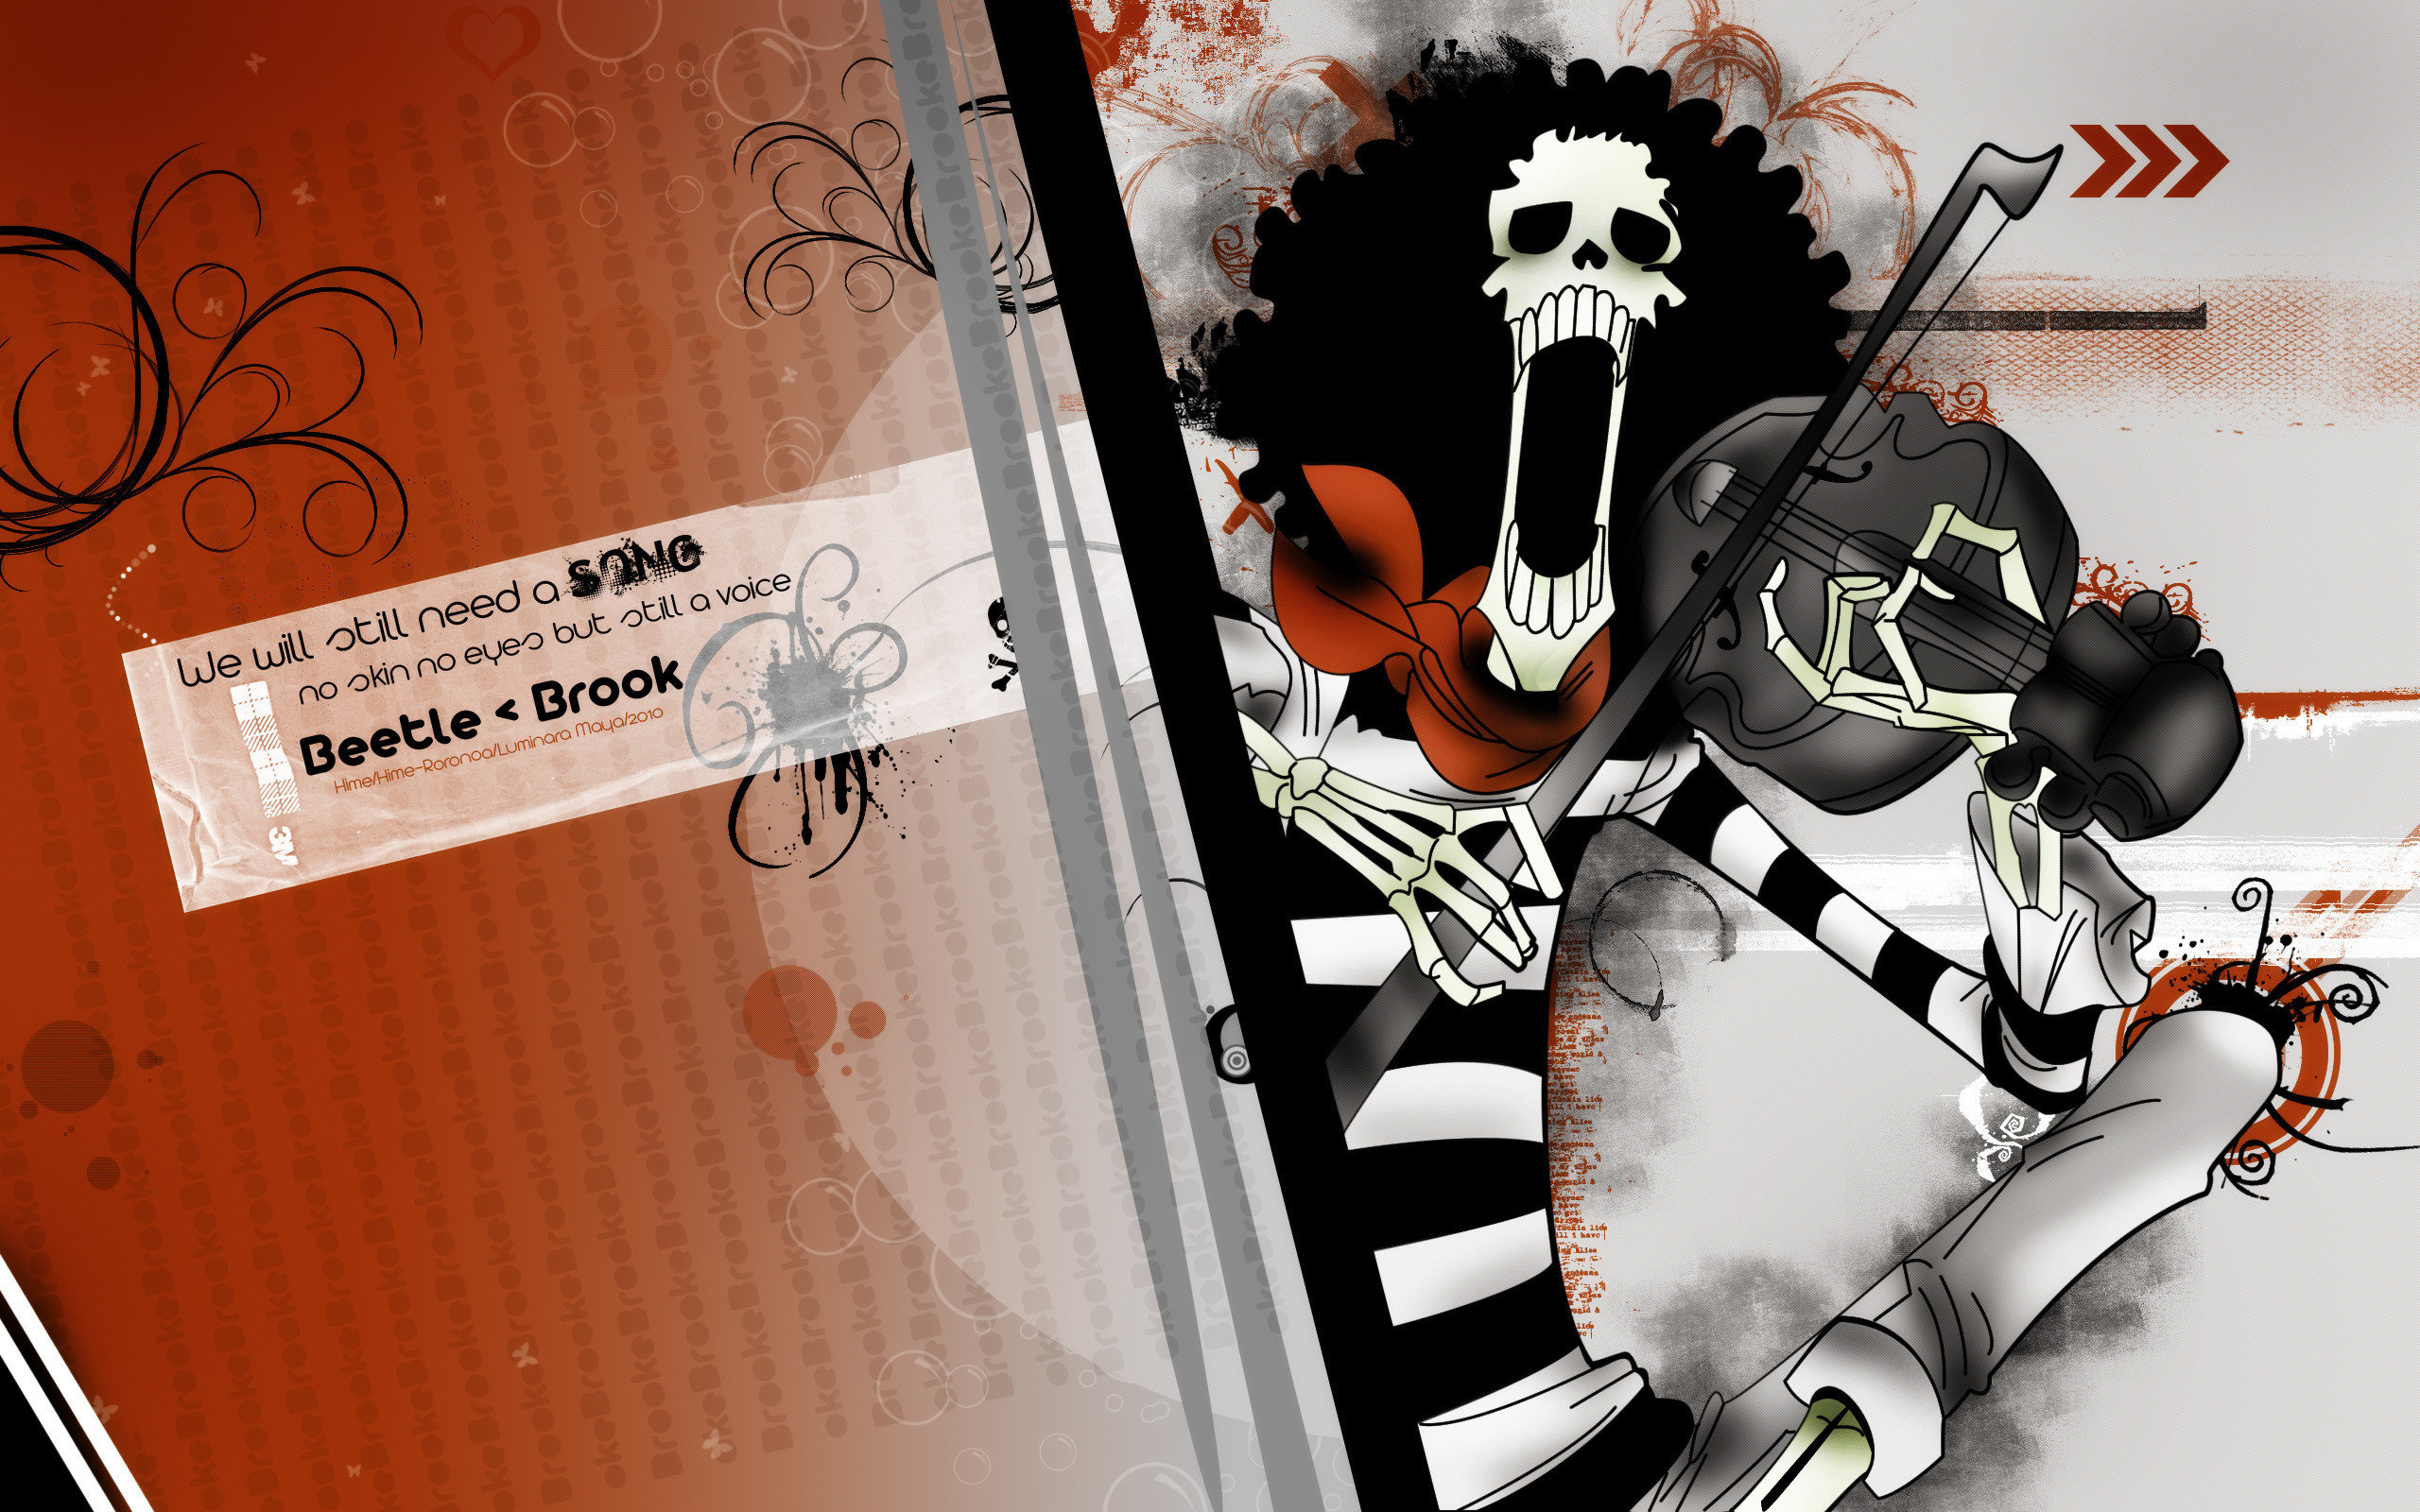 Download hd 2560x1600 Brook (One Piece) PC background ID:314840 for free